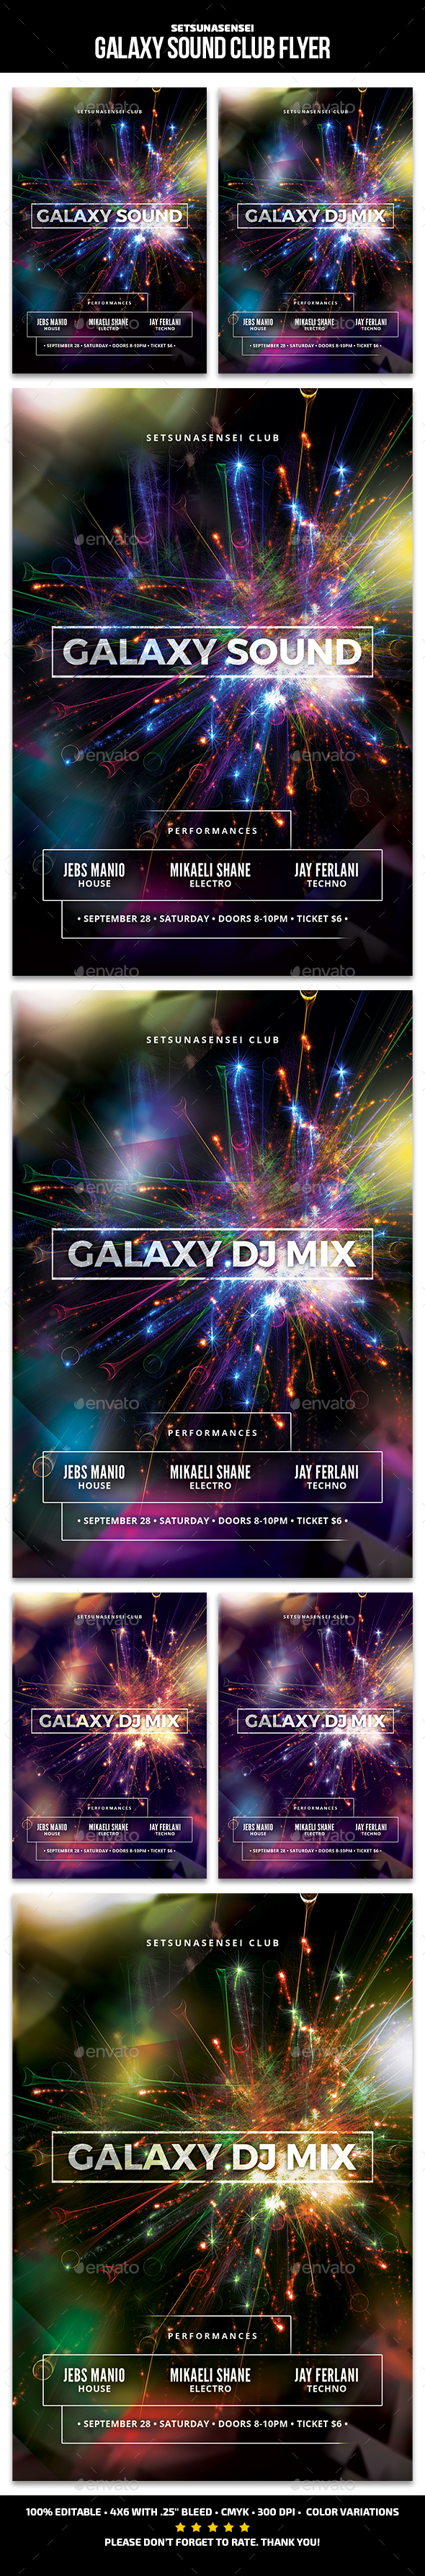 Galaxy Sound Club Flyer - Clubs & Parties Events